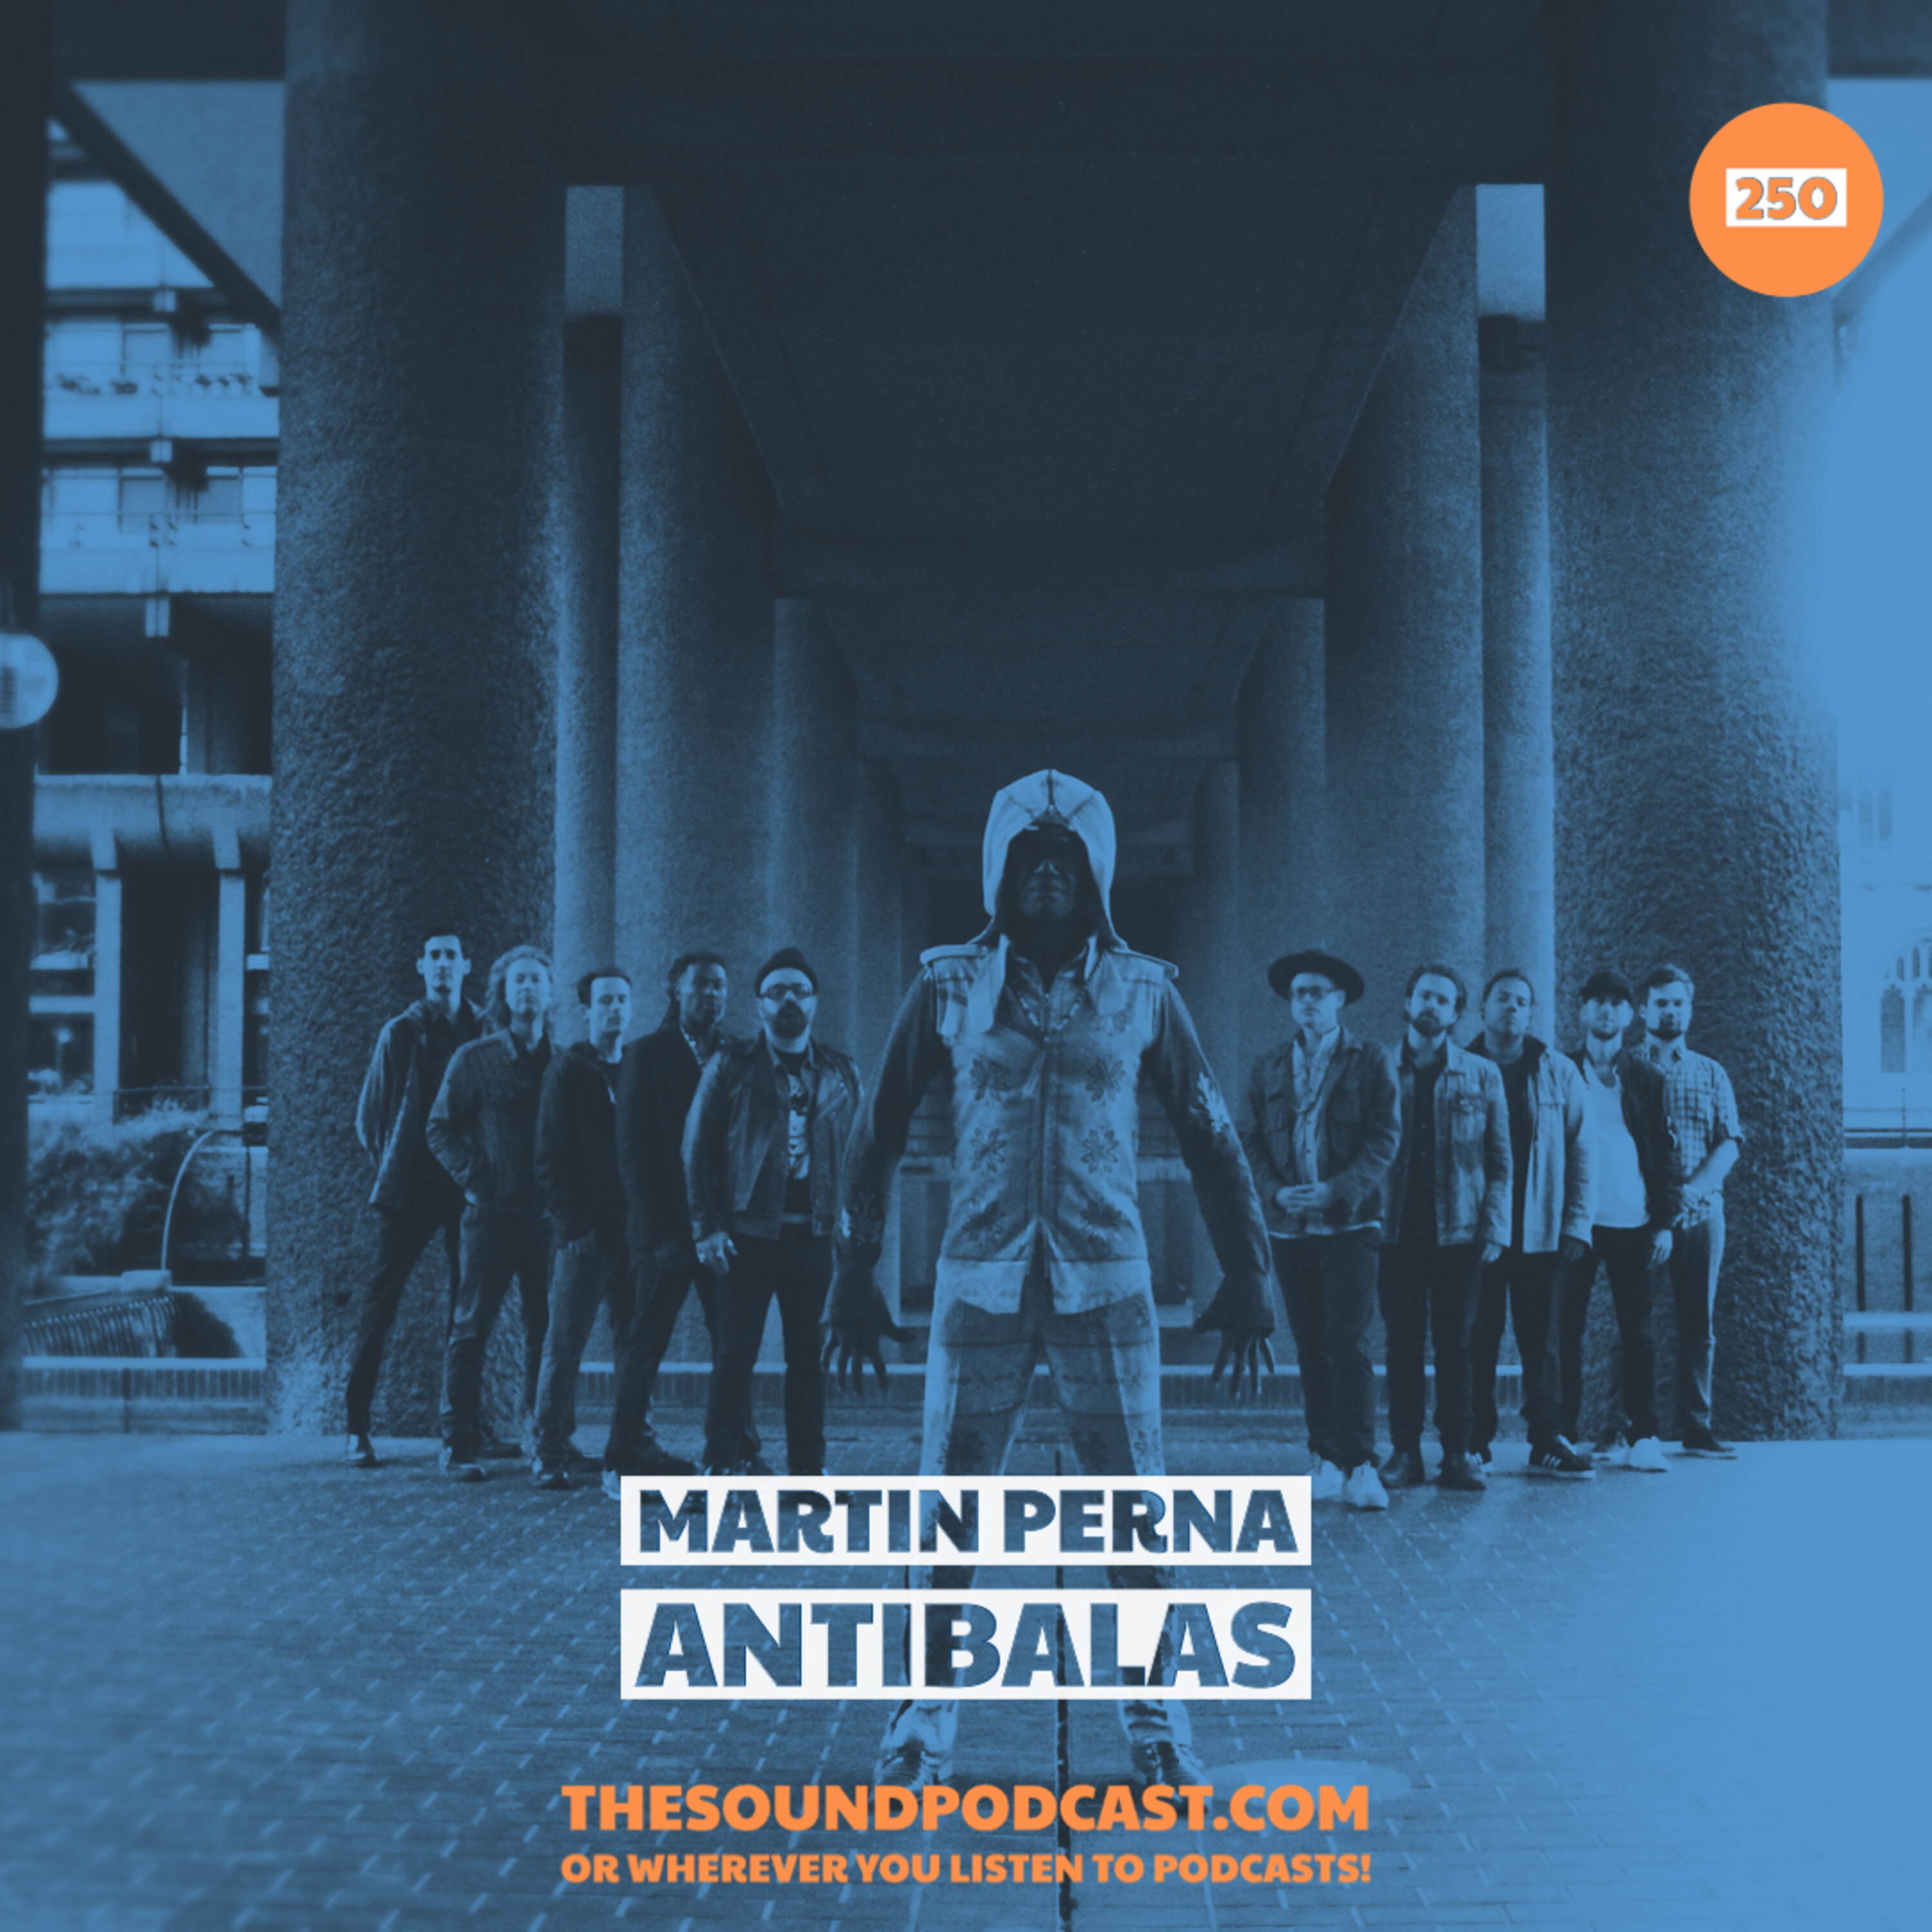 Martin Perna from Antibalas